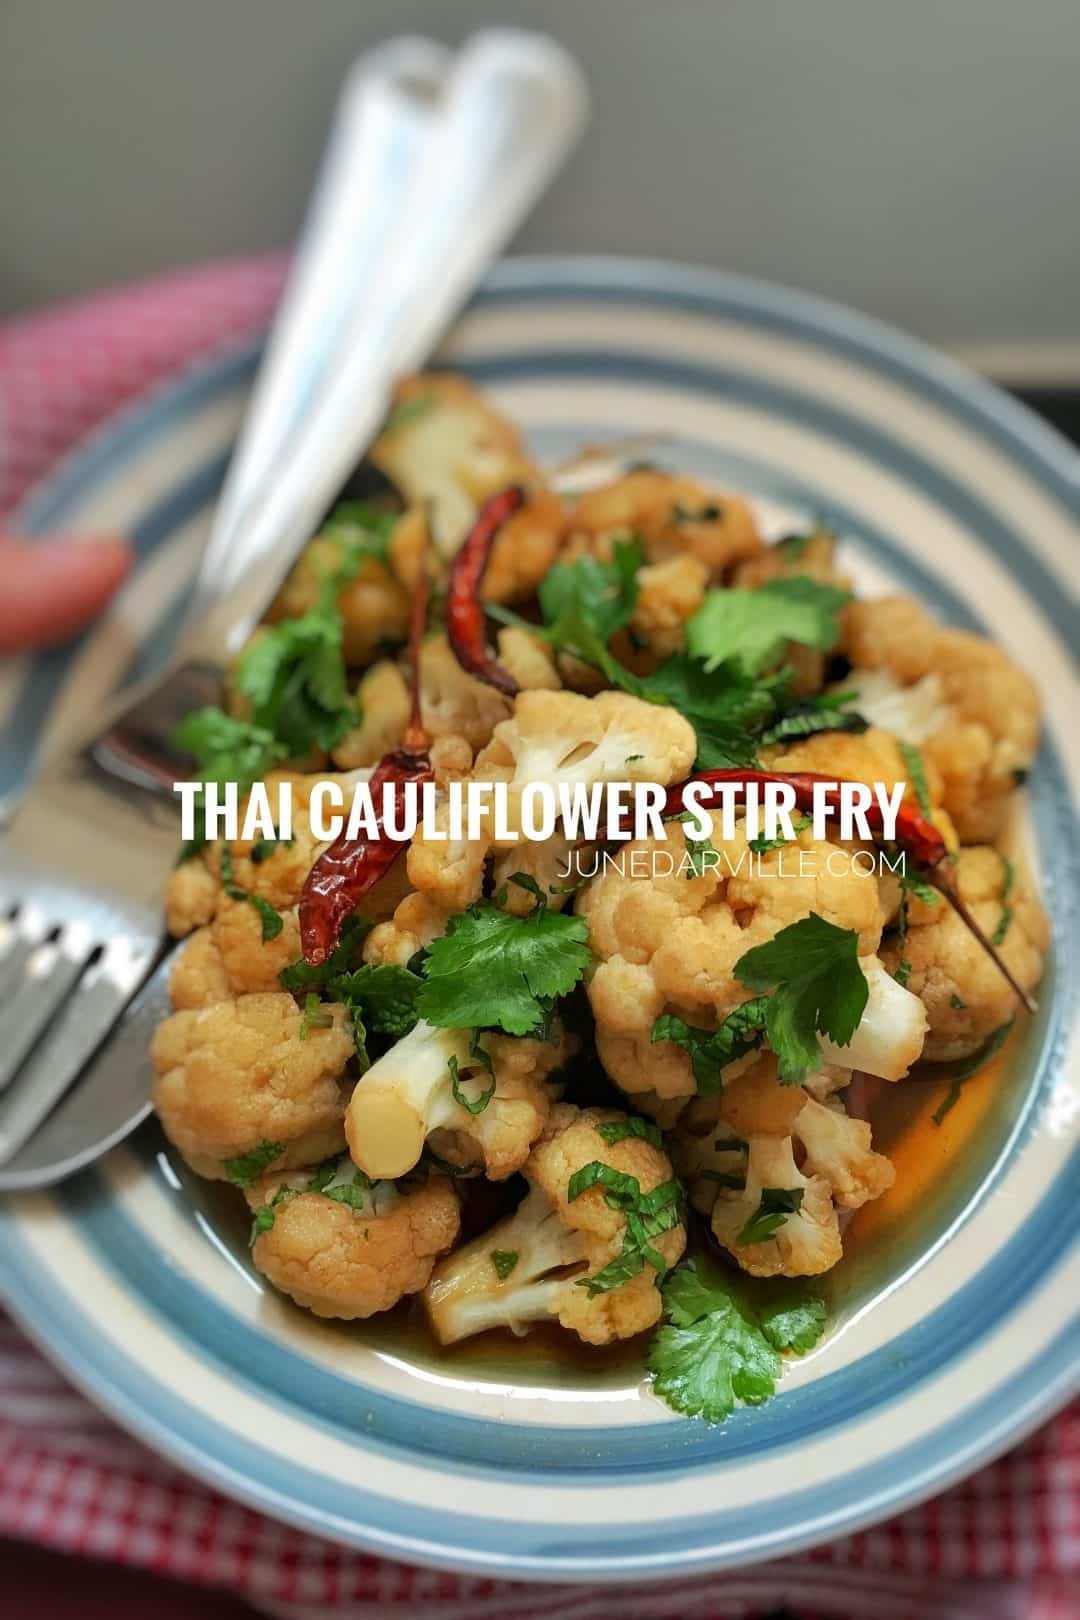 Crunchy vegetables in a simple oyster and fish sauce marinade... this Thai cauliflower stir fry is a quick and healthy side dish!